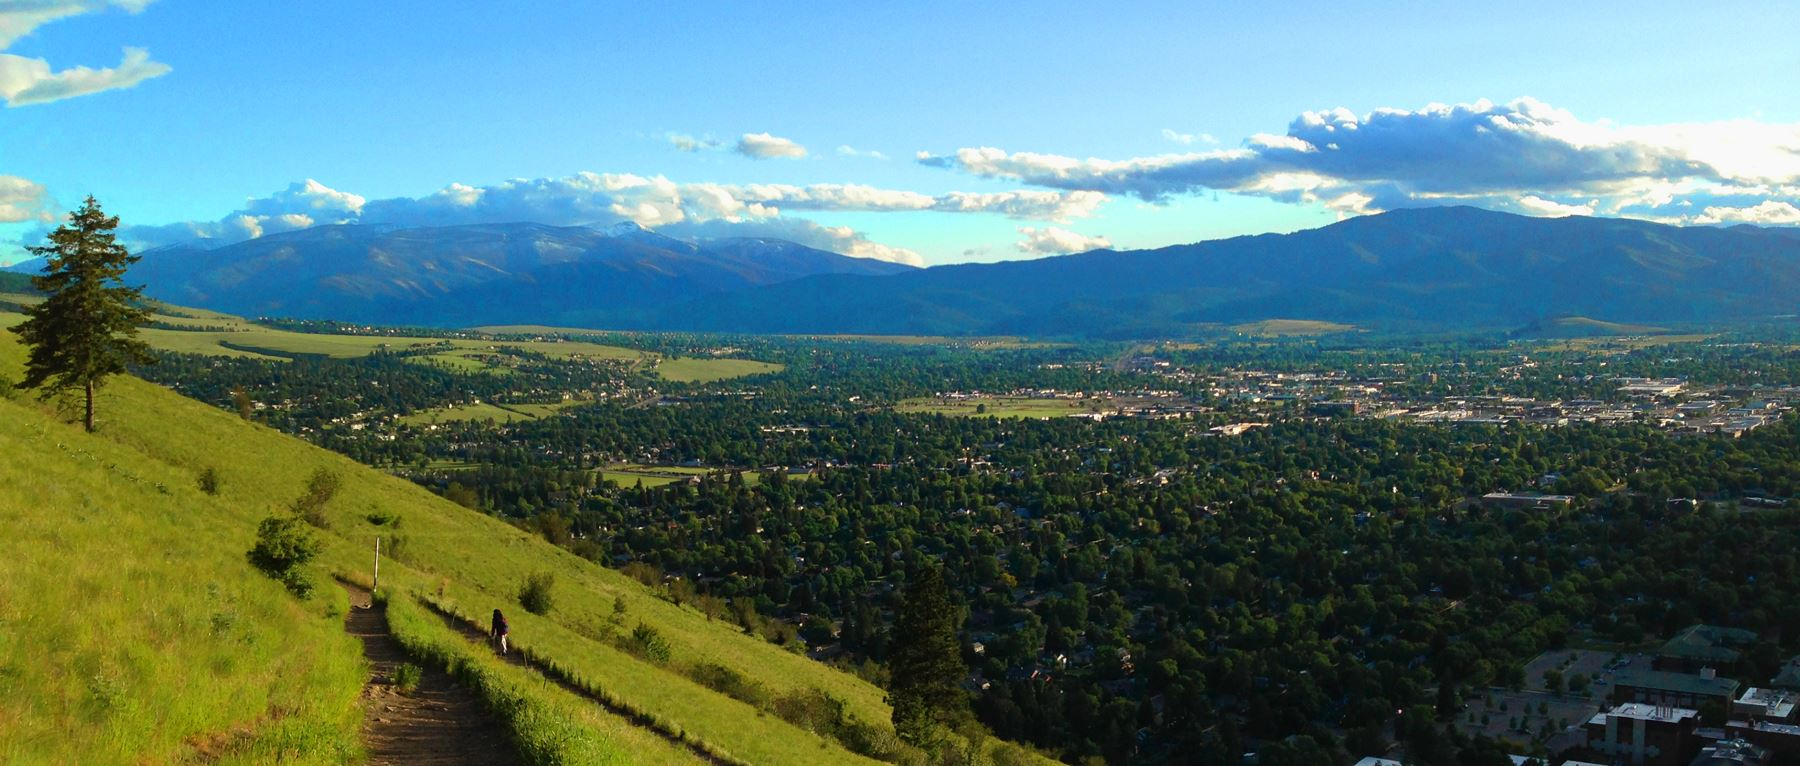 Glorious Missoula view